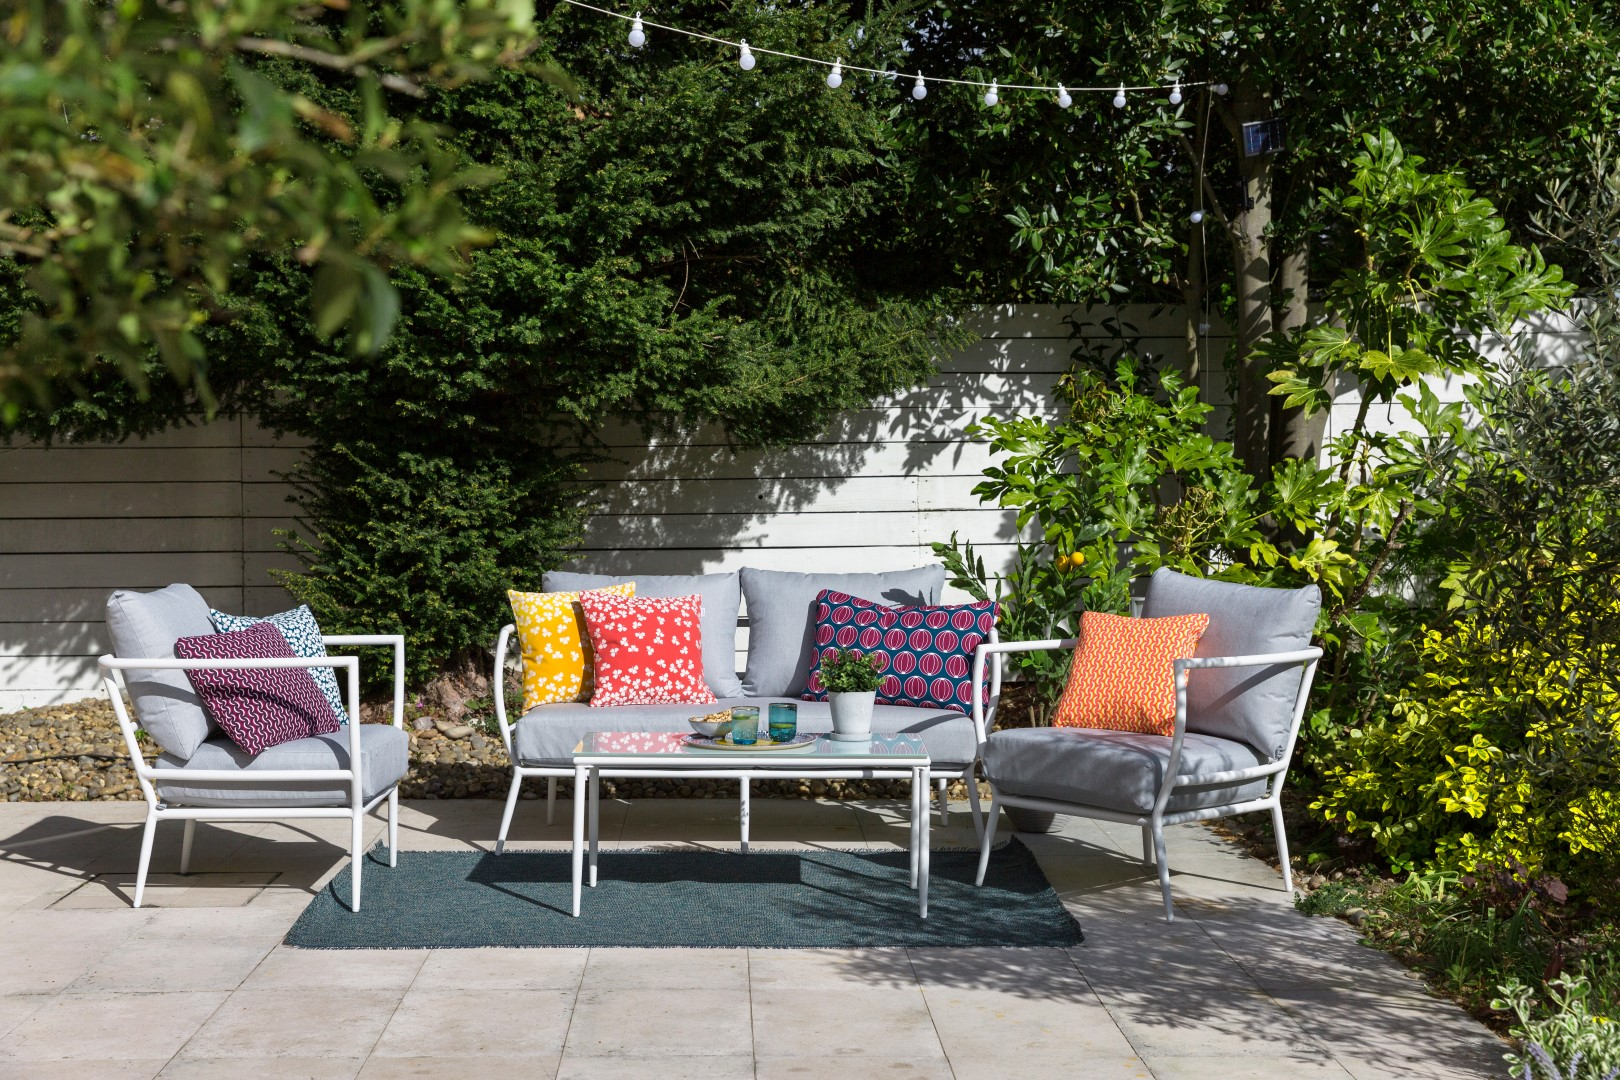 Outdoor Table And Chairs In Garden With Cushions